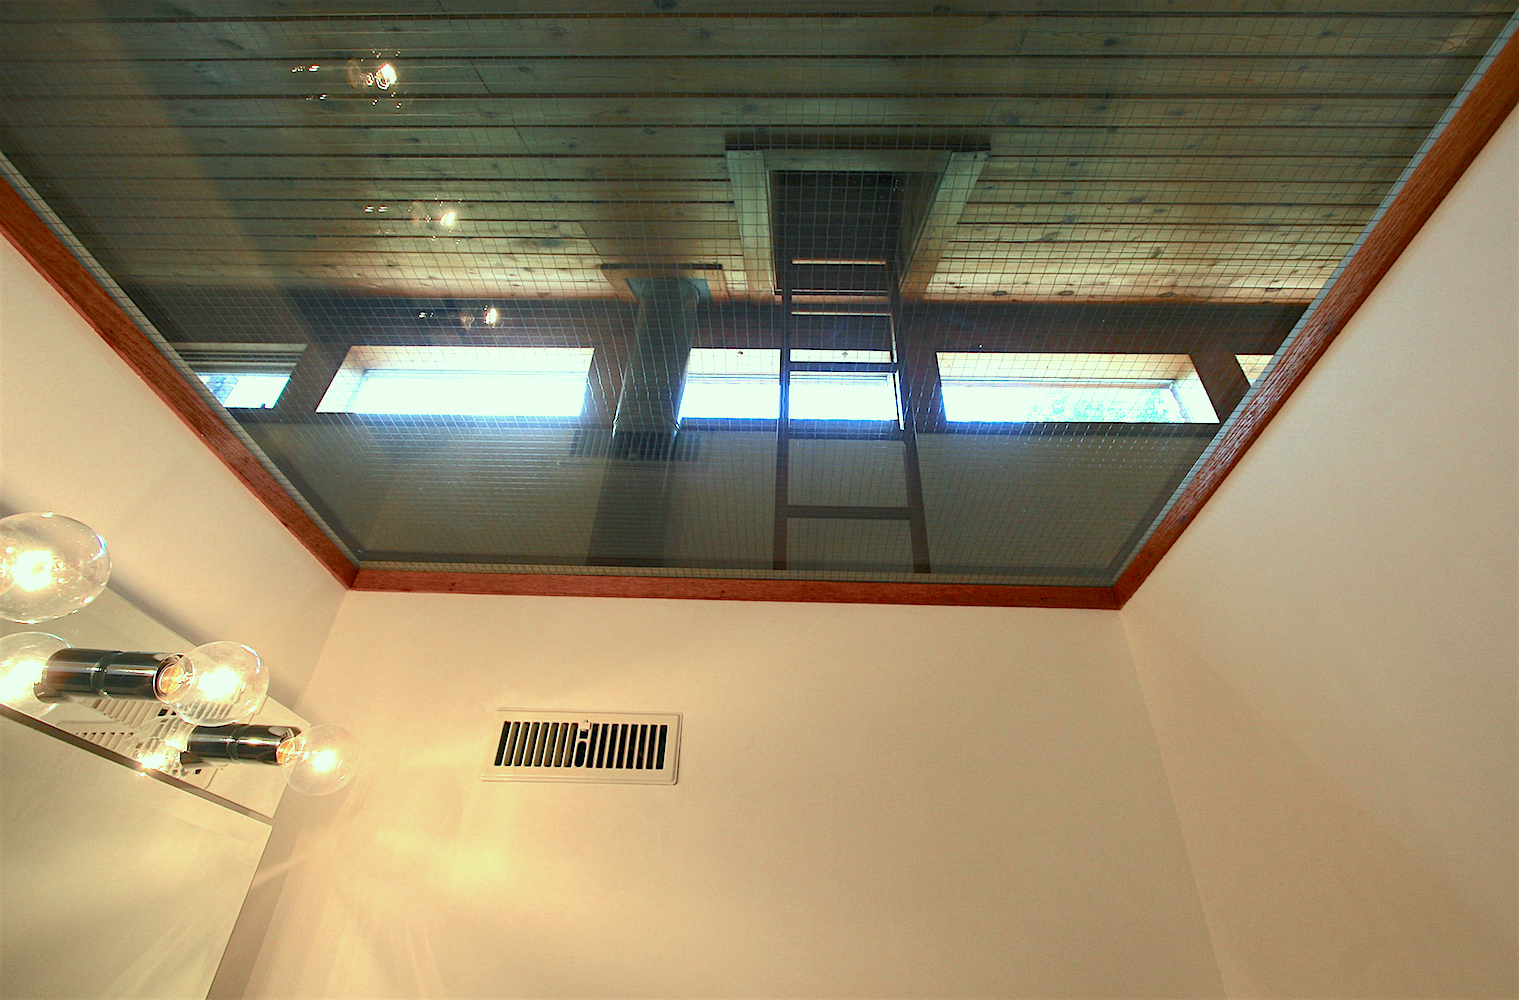 """The ceiling of the two-piece bath is made of wire-reinforced tempered glass, allowing in natural light from the clerestory windows. The upper ladder to the """"Eagle's Nest"""" can be seen above..."""